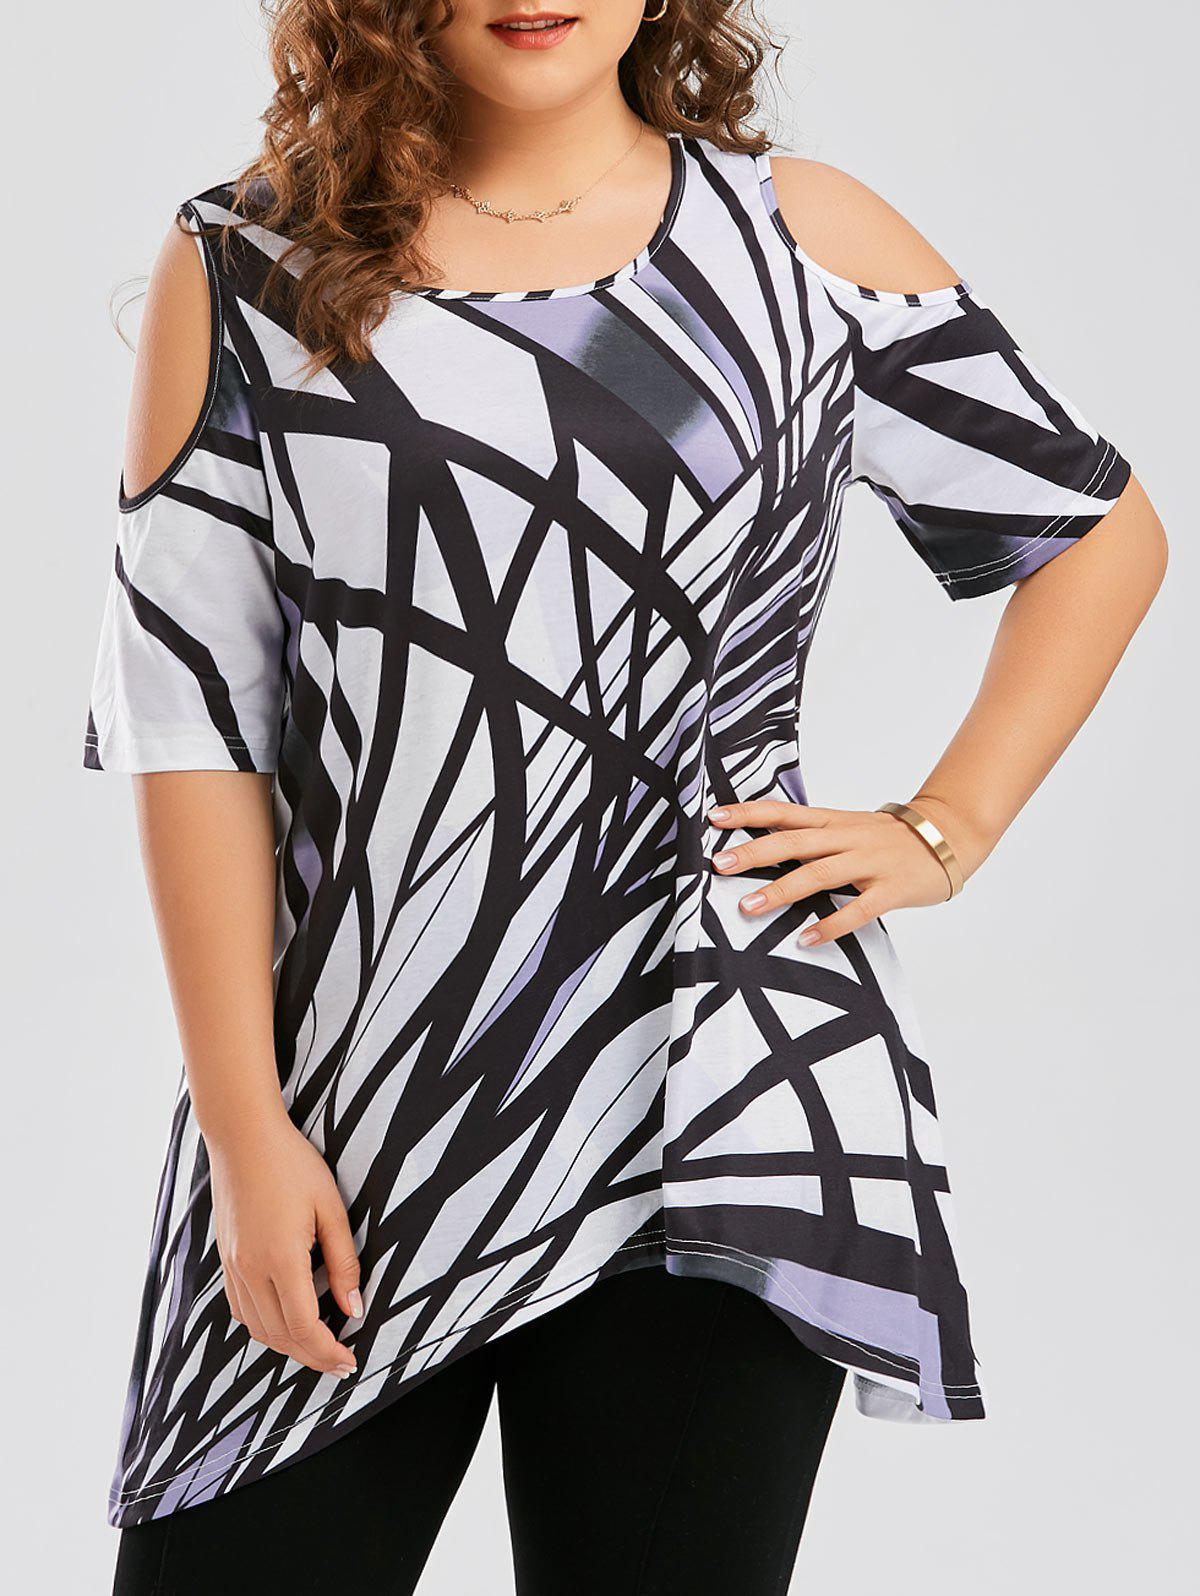 Cold Shoulder Geometric Asymmetrical Plus Size T-shirtWOMEN<br><br>Size: 2XL; Color: WHITE; Material: Polyester,Spandex; Shirt Length: Long; Sleeve Length: Short; Collar: Round Neck; Style: Fashion; Season: Fall,Spring,Summer; Pattern Type: Geometric; Weight: 0.3500kg; Package Contents: 1 x T-shirt;